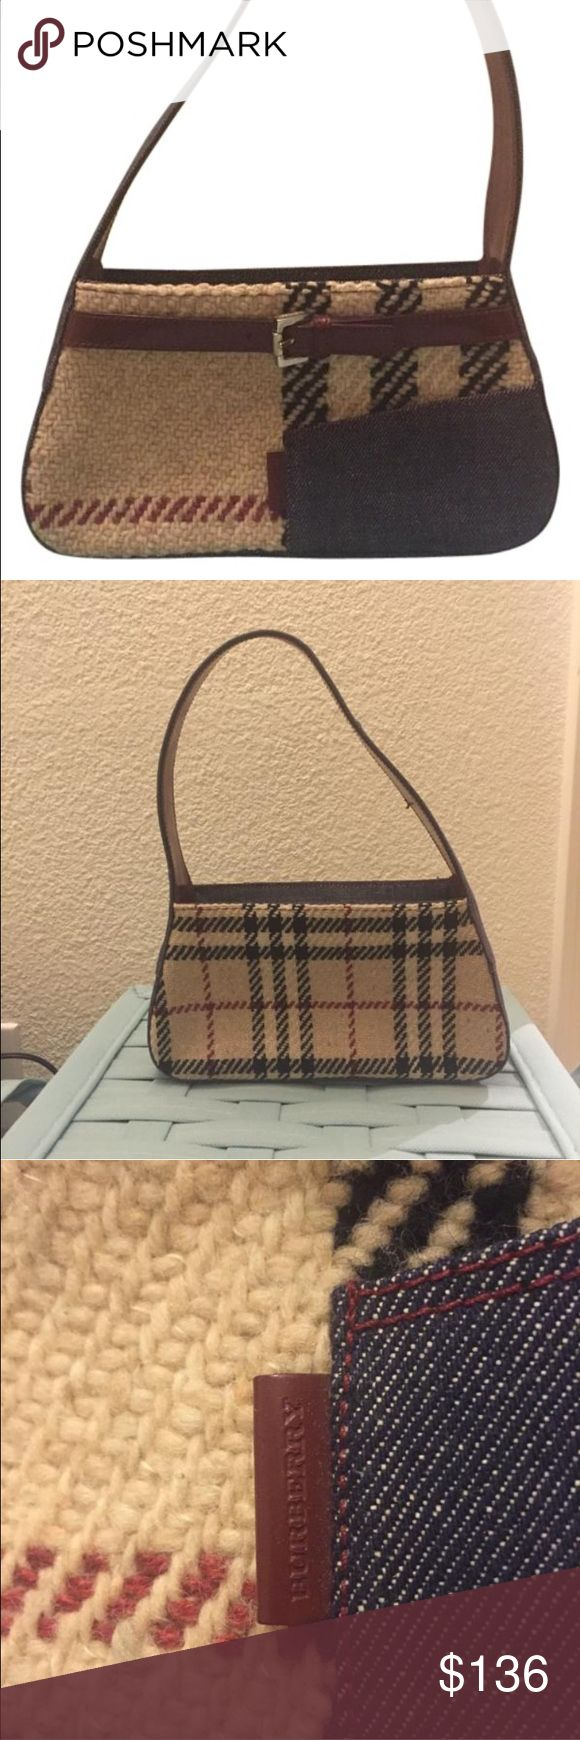 Burberry Wool. Mini shoulder bag. Authentic. Great for winter fall season! Burberry Bags Mini Bags